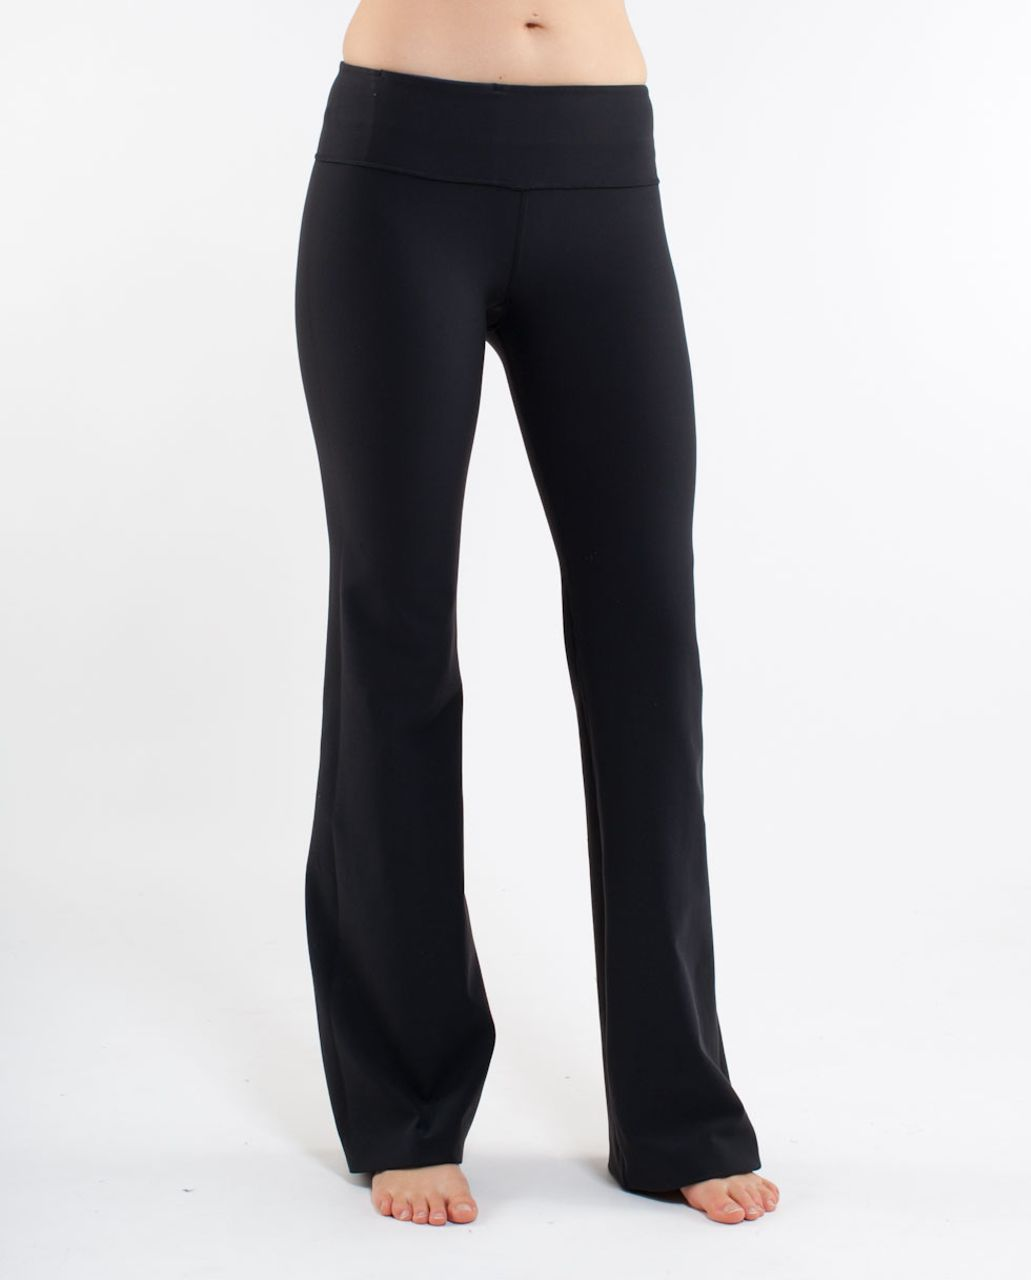 Lululemon Groove Pant (Regular) - Black /  Elevation Space Dye